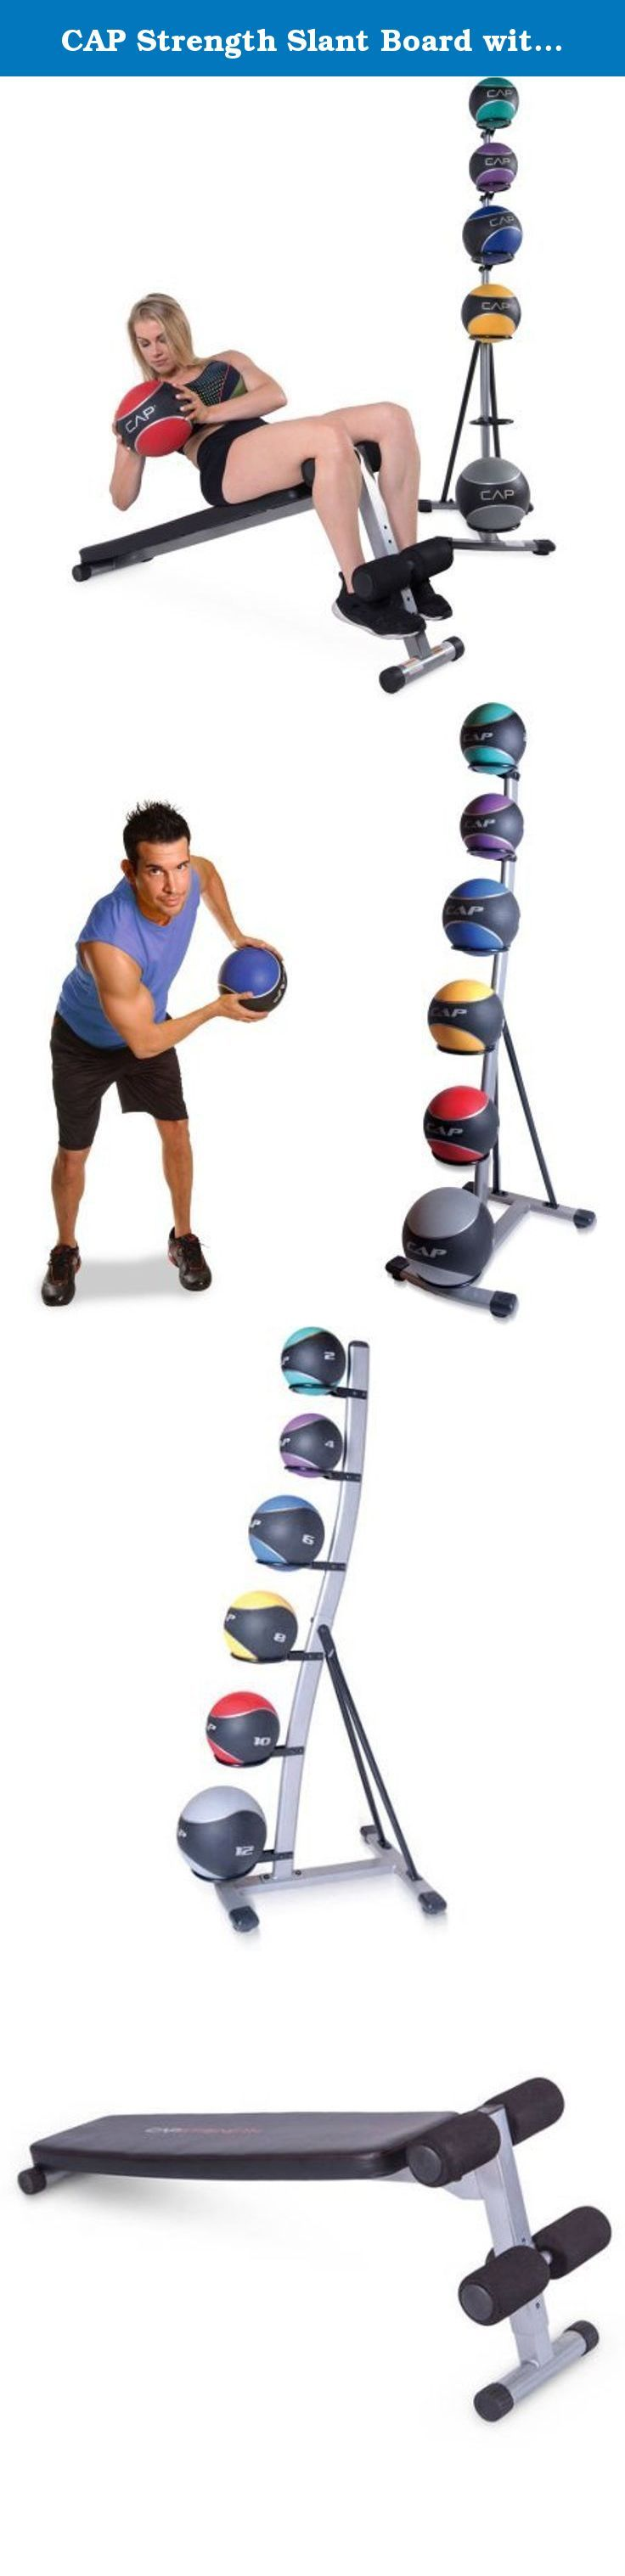 CAP Strength Slant Board with 42 lb Medicine Ball Set. Target your abdominal and core muscles with the CAP Strength Slant Board with 42 lb Medicine Ball Set. This convenient set gives you the tools you need to get your abdominal region in top shape. The CAP Strength Slant Board is a compact and durable piece of equipment. The steel frame and powder-coated finish ensure it will withstand even the most vigorous routines. The CAP Strength Slant Board assists in a variety of exercises…